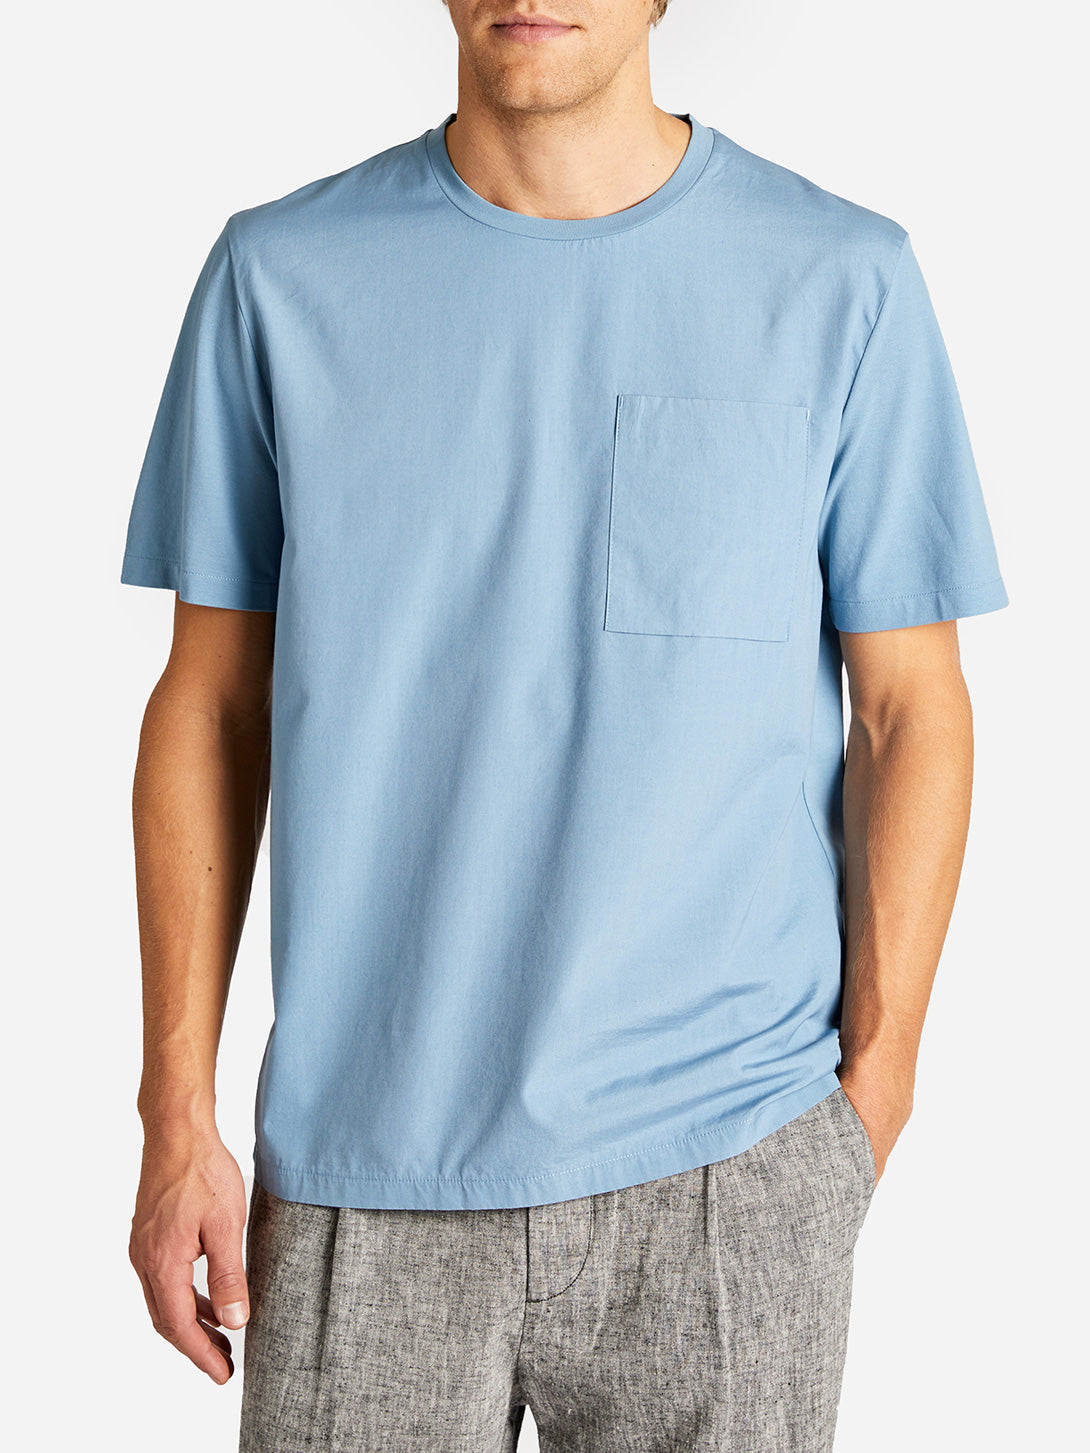 LENOX POCKET TEE CADET BLUE ONS CLOTHING GREY LABEL